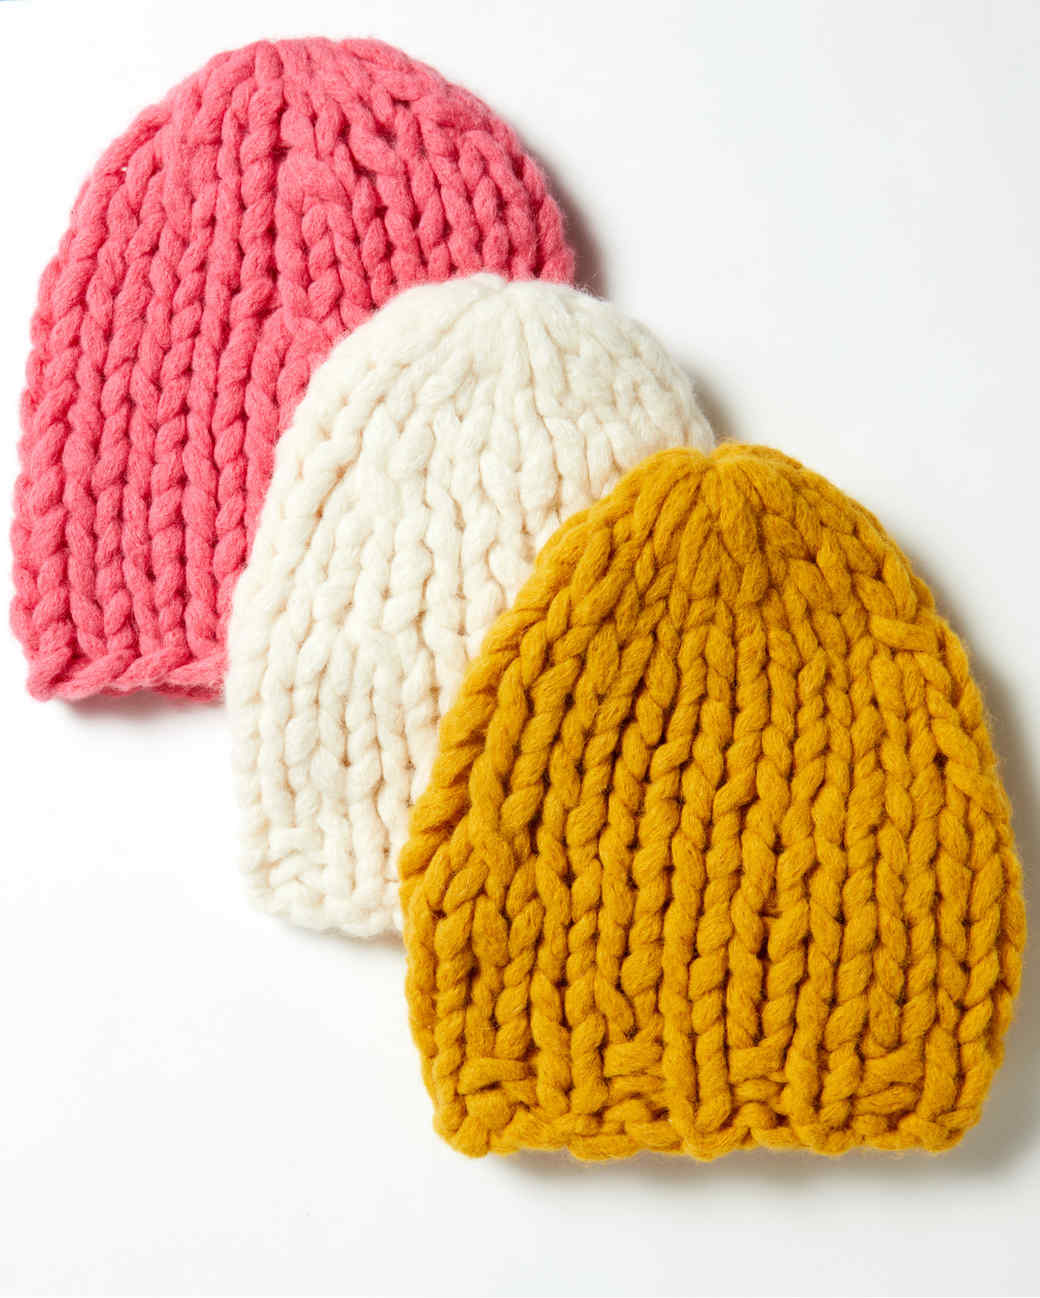 multi-colored hand-knit stocking hats